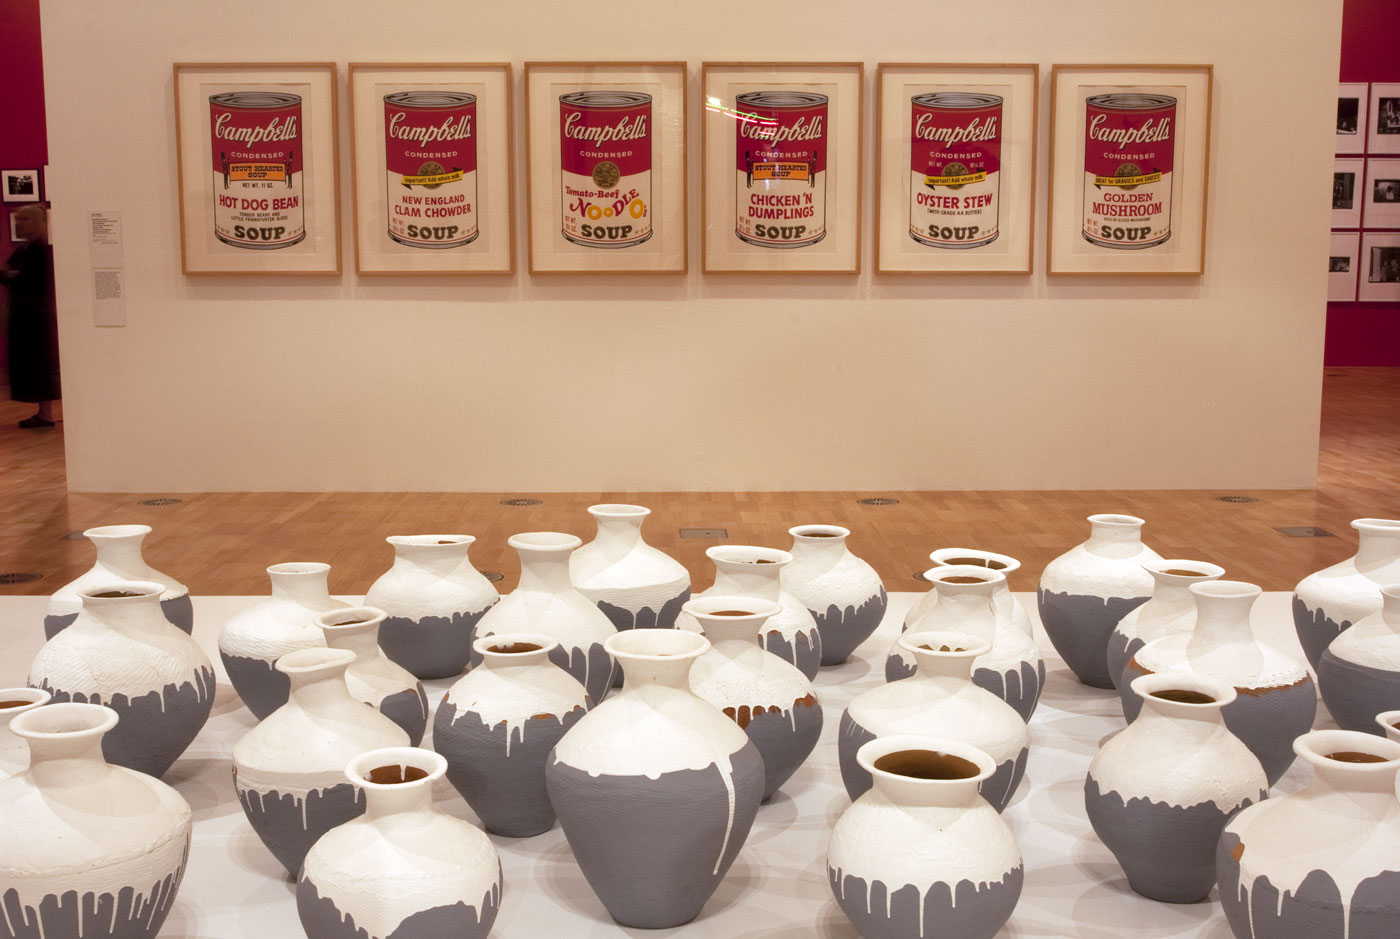 Ai weiwei blossom art blart installation view of the first room including andy warhols screen prints from his campbells soup floridaeventfo Image collections